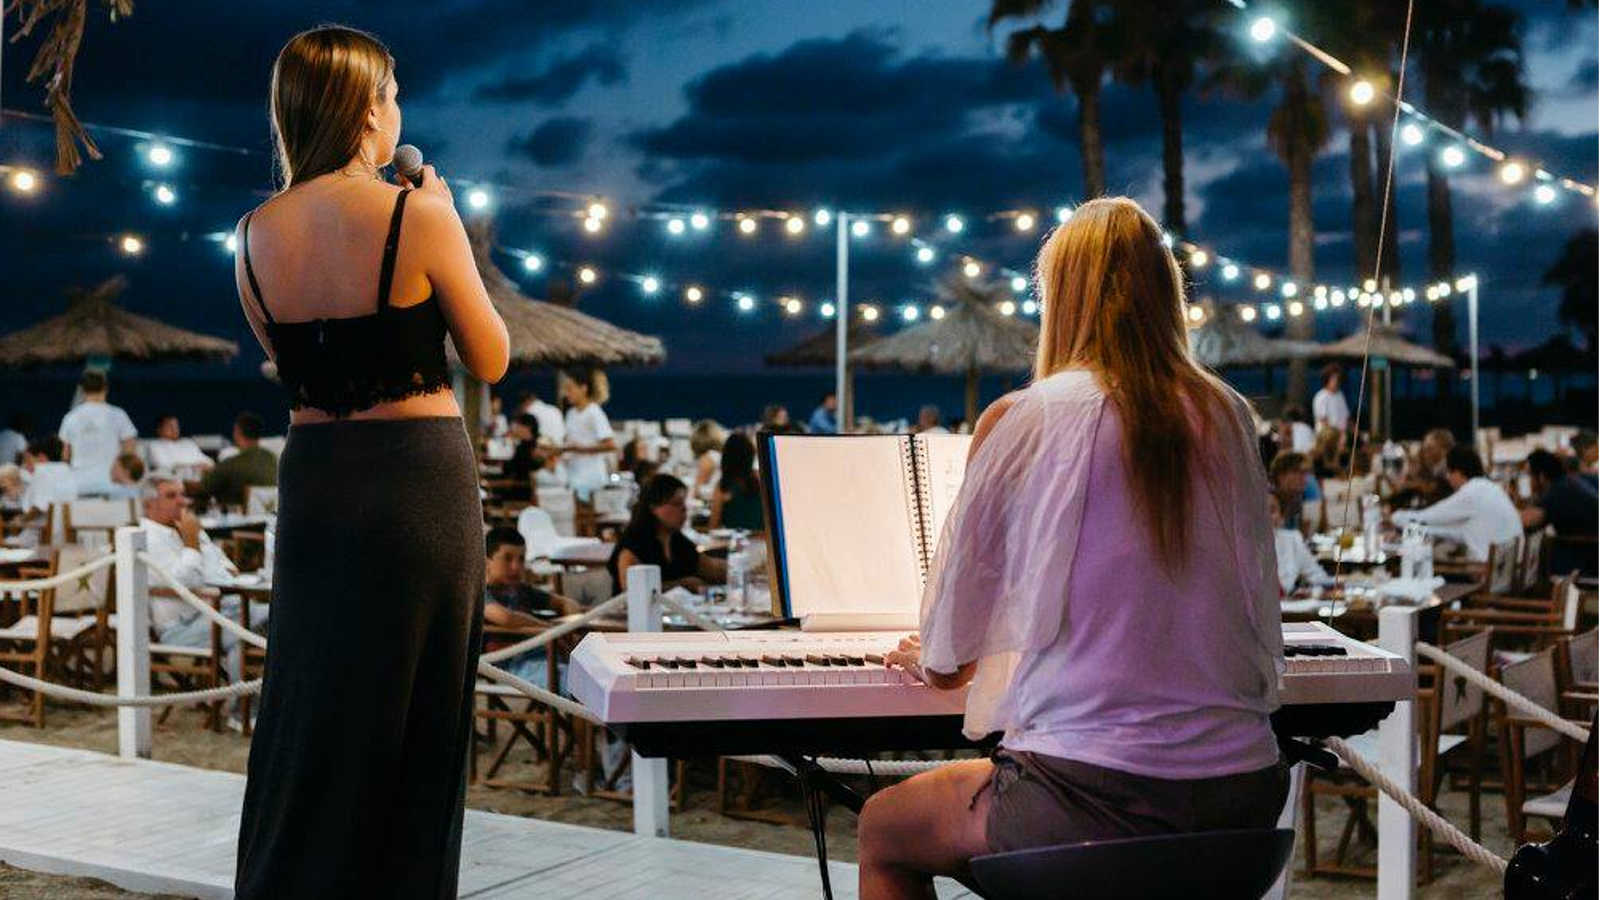 Live Music and Entertainment at the Beach Club Le Méridien Ra